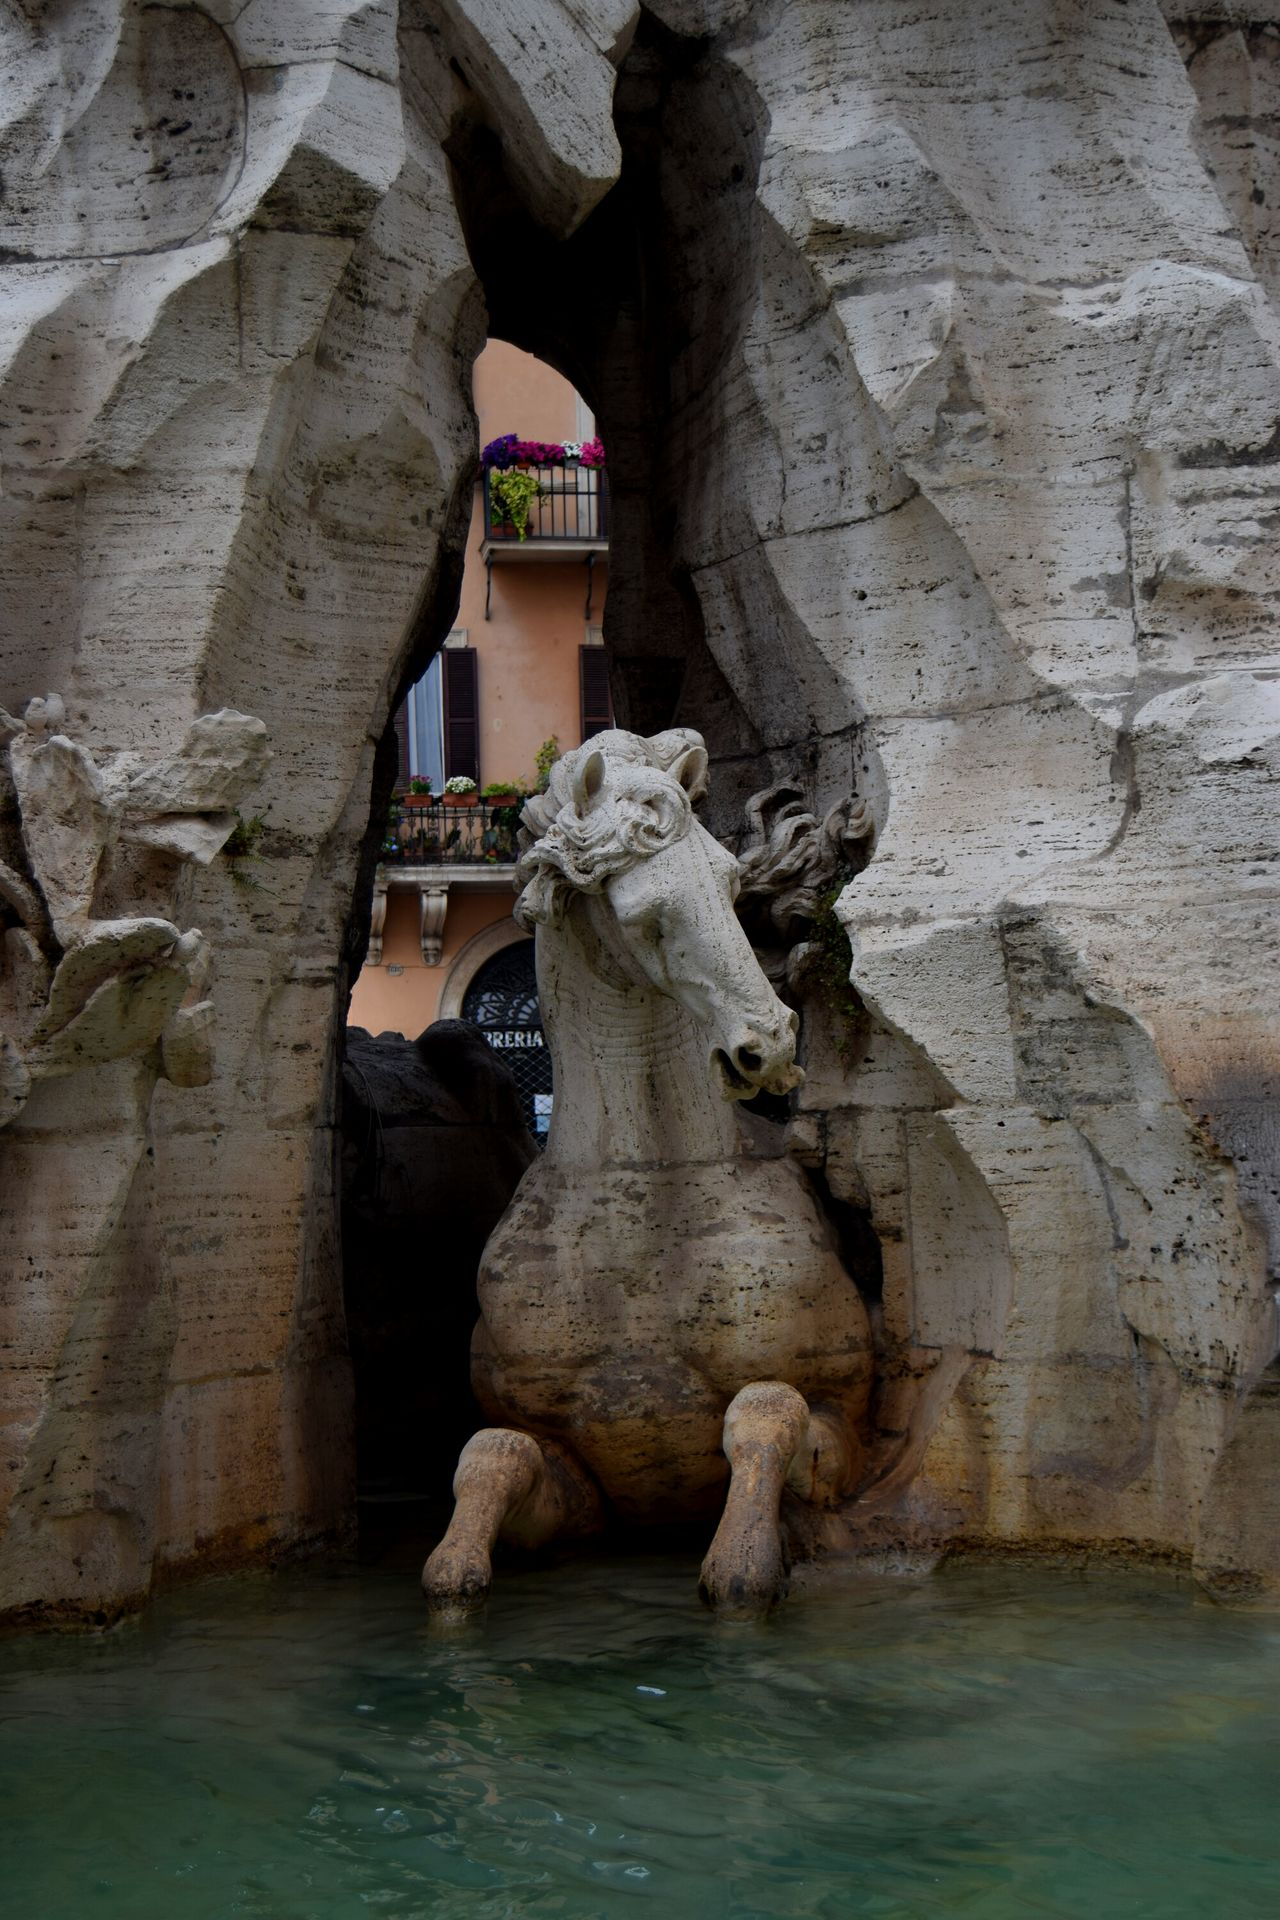 Italy🇮🇹 Roma Rome Fountain_collection Streetphotography Exploring Photography Sculpture Piazza Navona Monument Art And Craft Outdoors Statue Walk Creativity Marmol The Week Of Eyeem Newtalent Sculpture Mastery Human Representation Center Picoftheday Photographer Photooftheday Famous Place